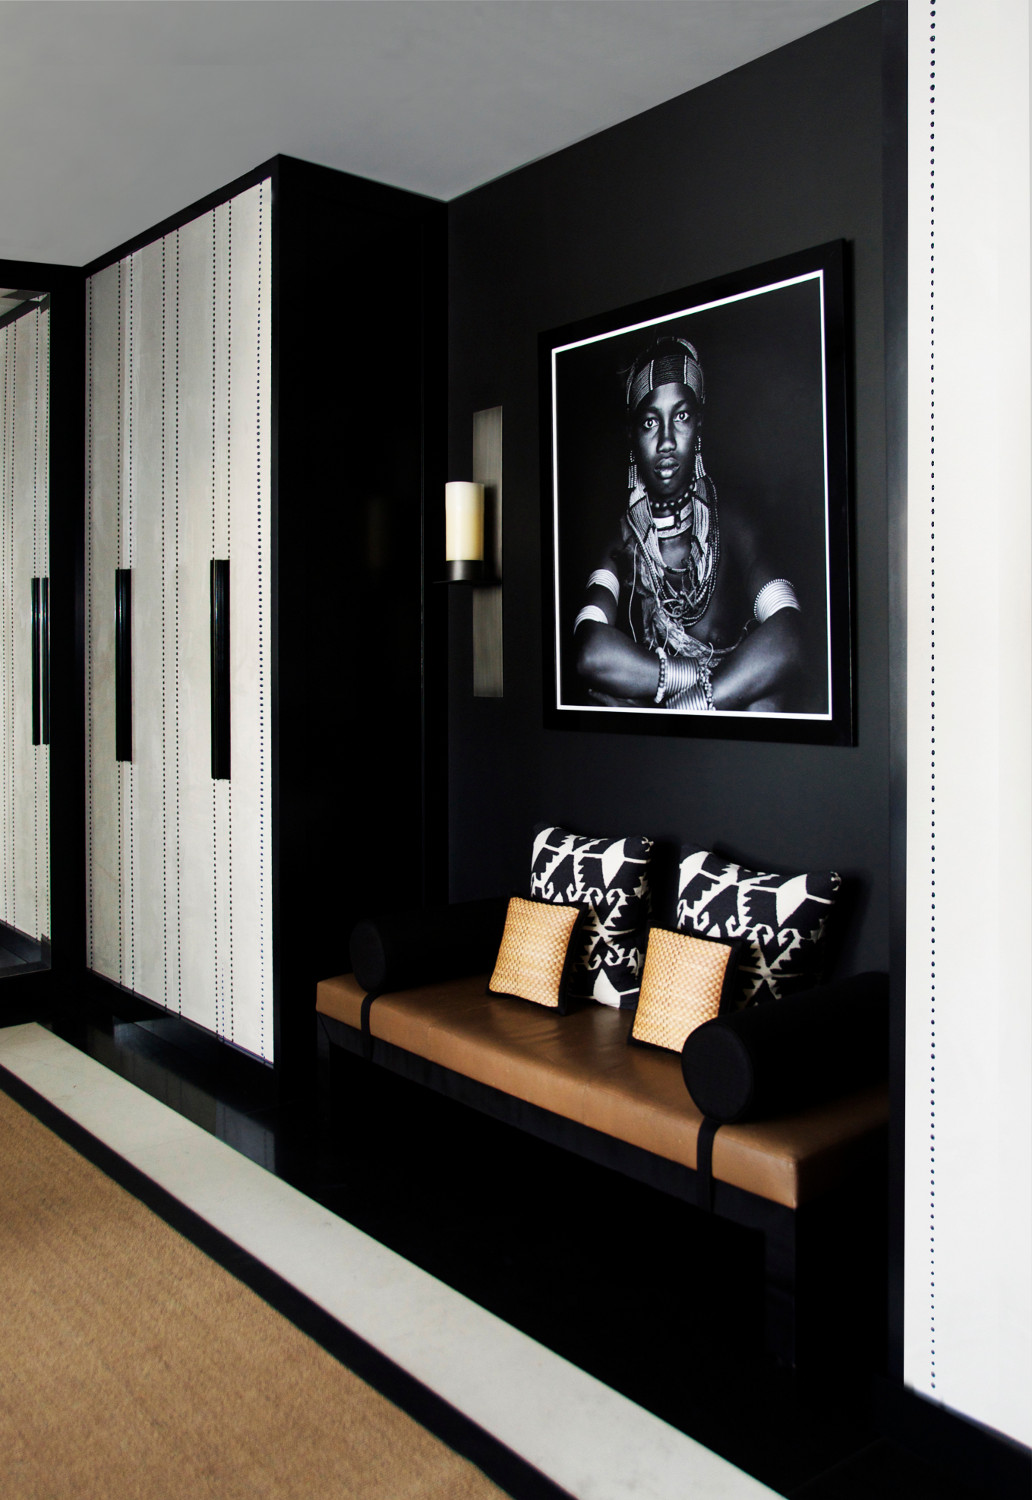 Interior design by Aleksandra Miecznicka - interior design trends 2018 - black finishes - black door hardware - black walls